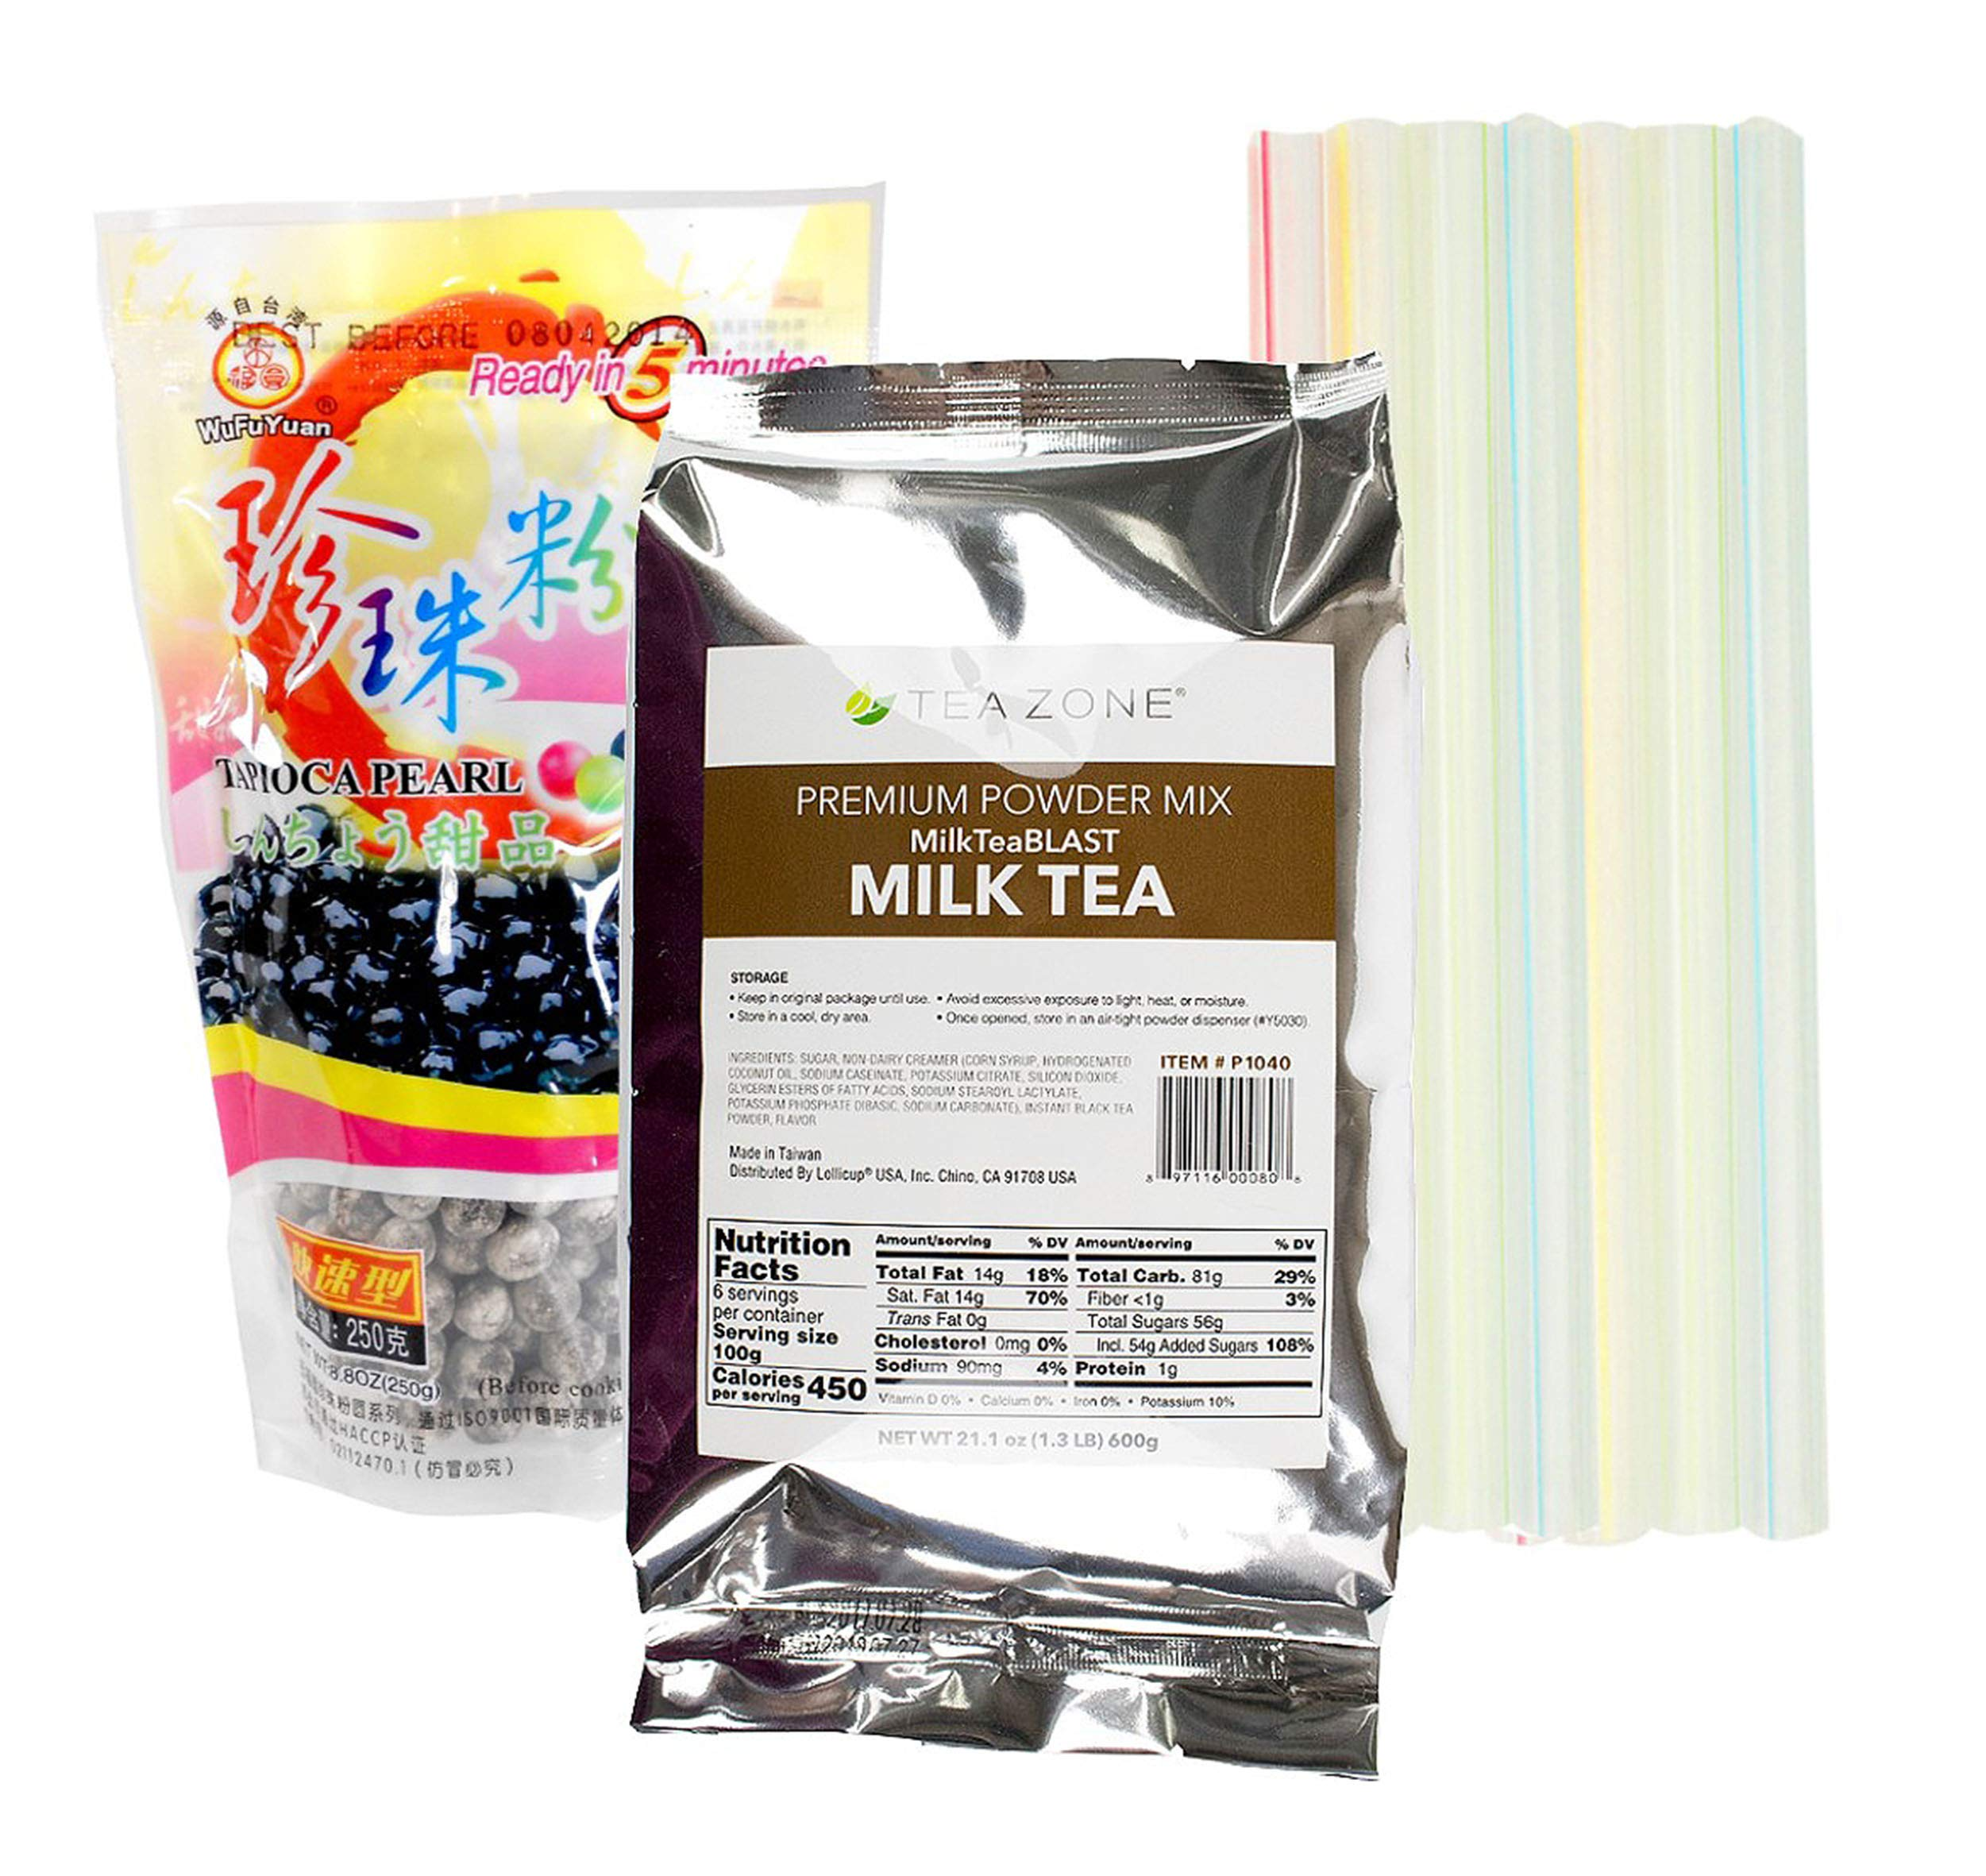 Boba Bubble Tea Milk Tea Kit with 1 Tea Zone Instant Milk Tea, 1 Black WuFuYuan Tapioca Pearls and 10 Boba Wide Straws Individually Wrapped by TastyKitchen